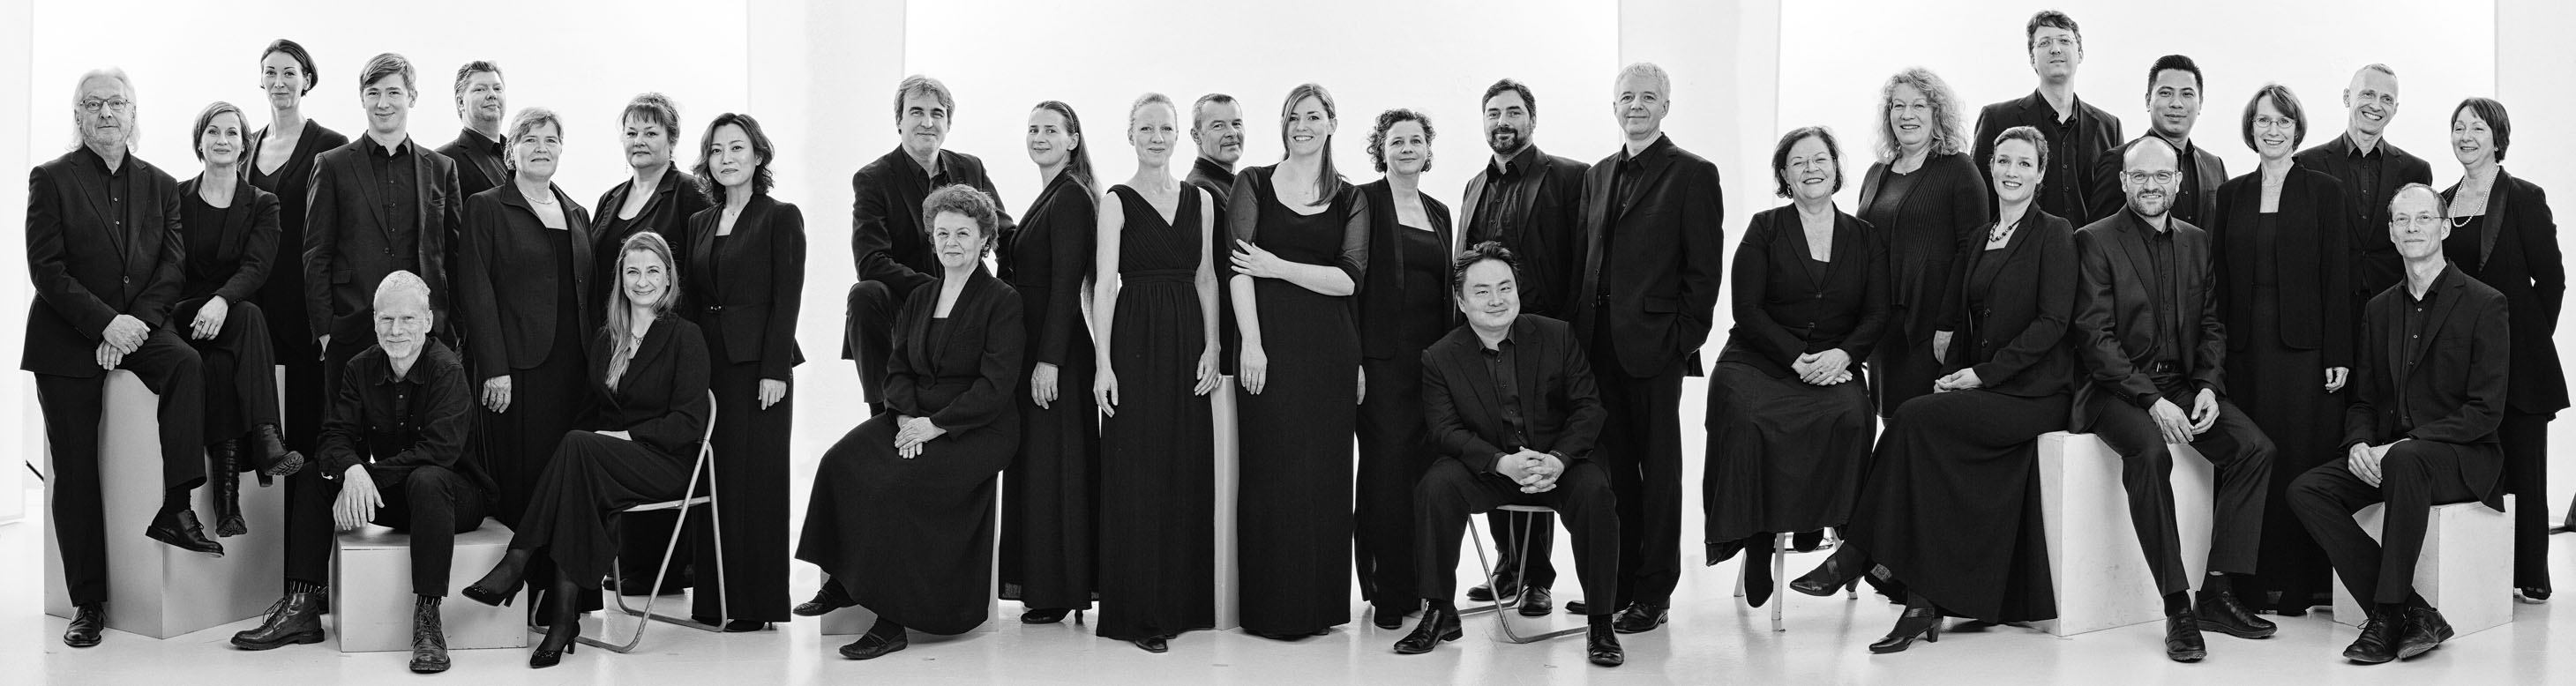 RIAS Kammerchor - ein Ensemble der roc berlin